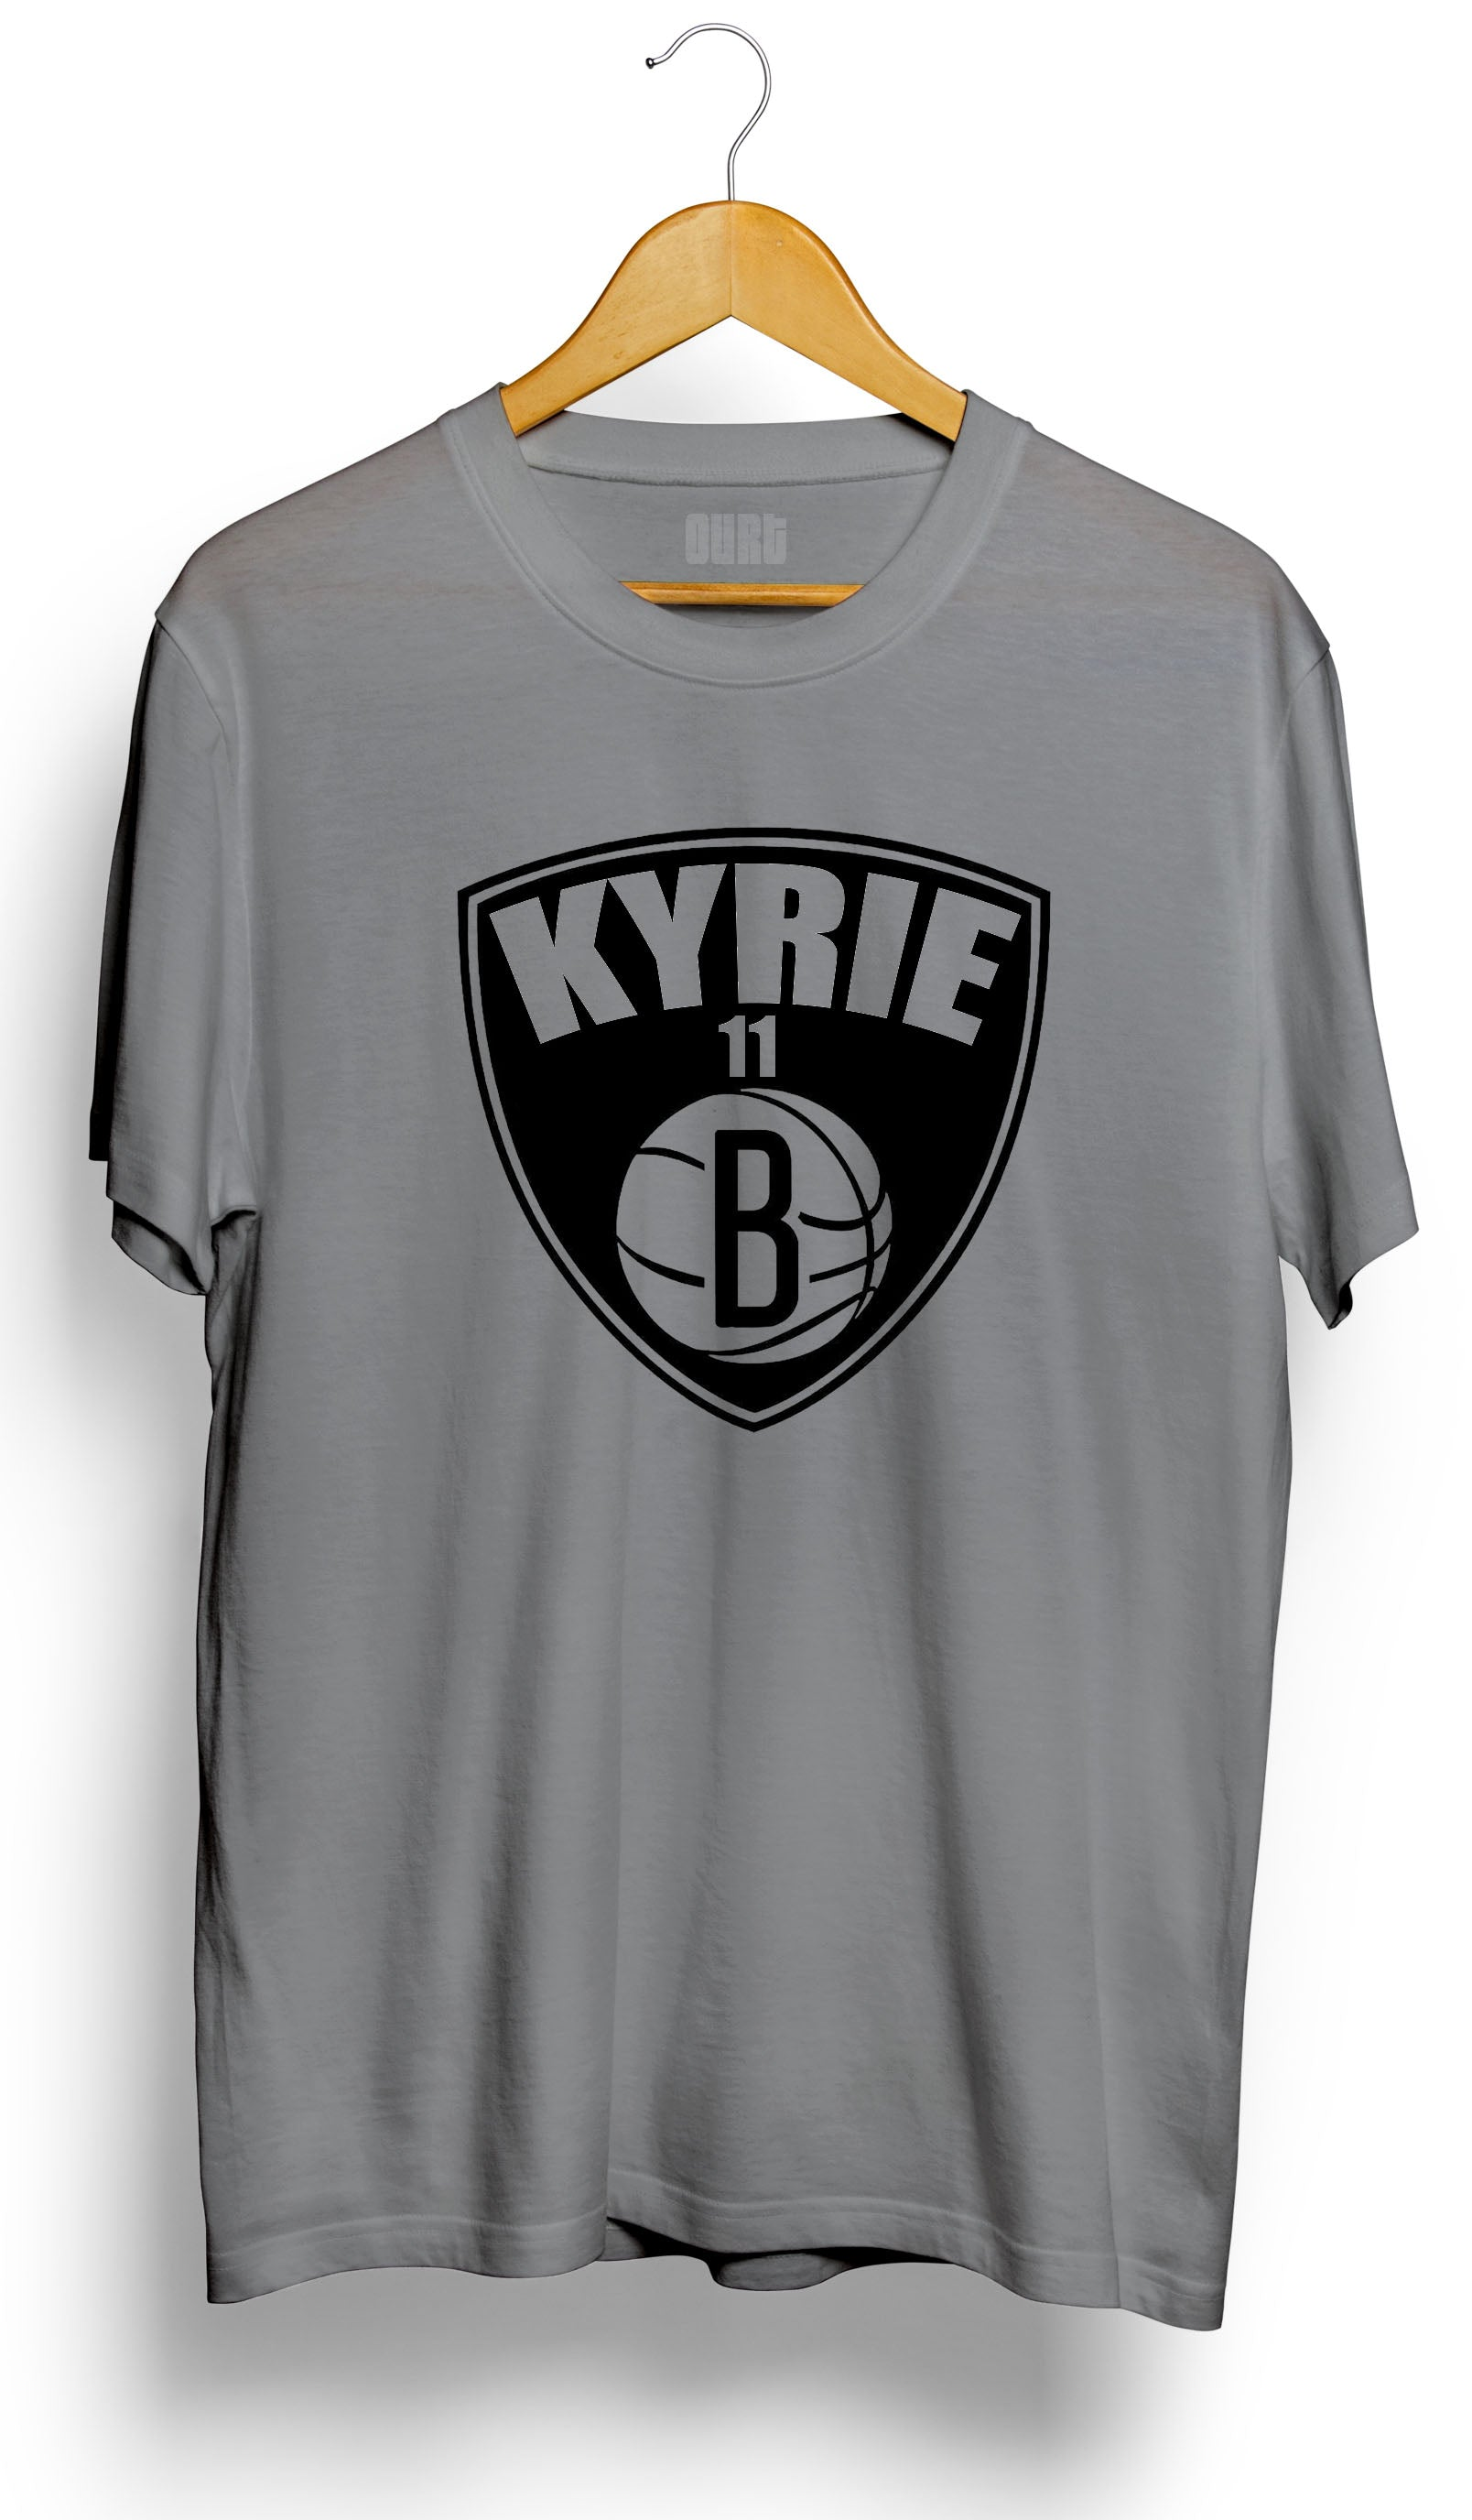 Kyrie Irving Brooklyn Nets T-Shirt - Ourt